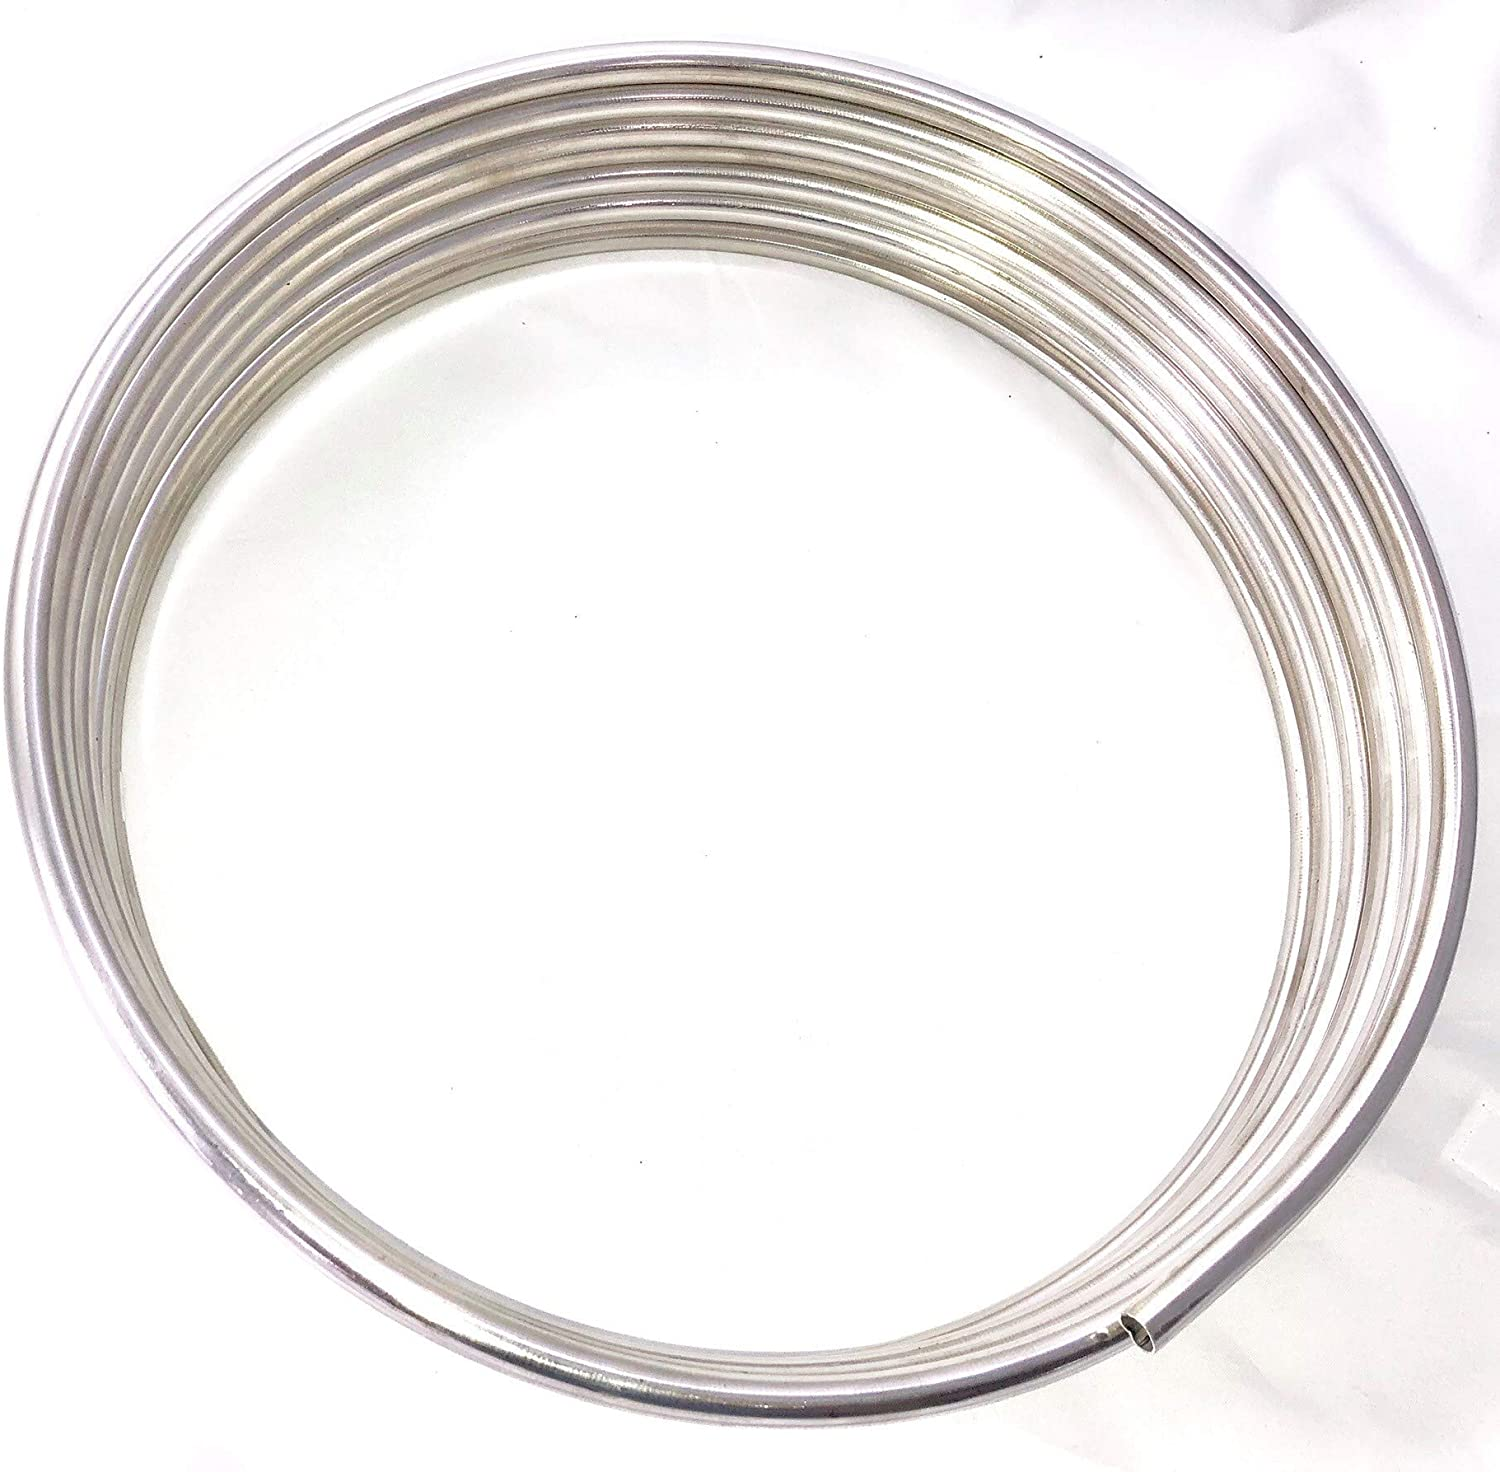 "16 Ft of 3/8"" Stainless Steel Fuel Line Tubing Coil, Grade 304, Made in USA"